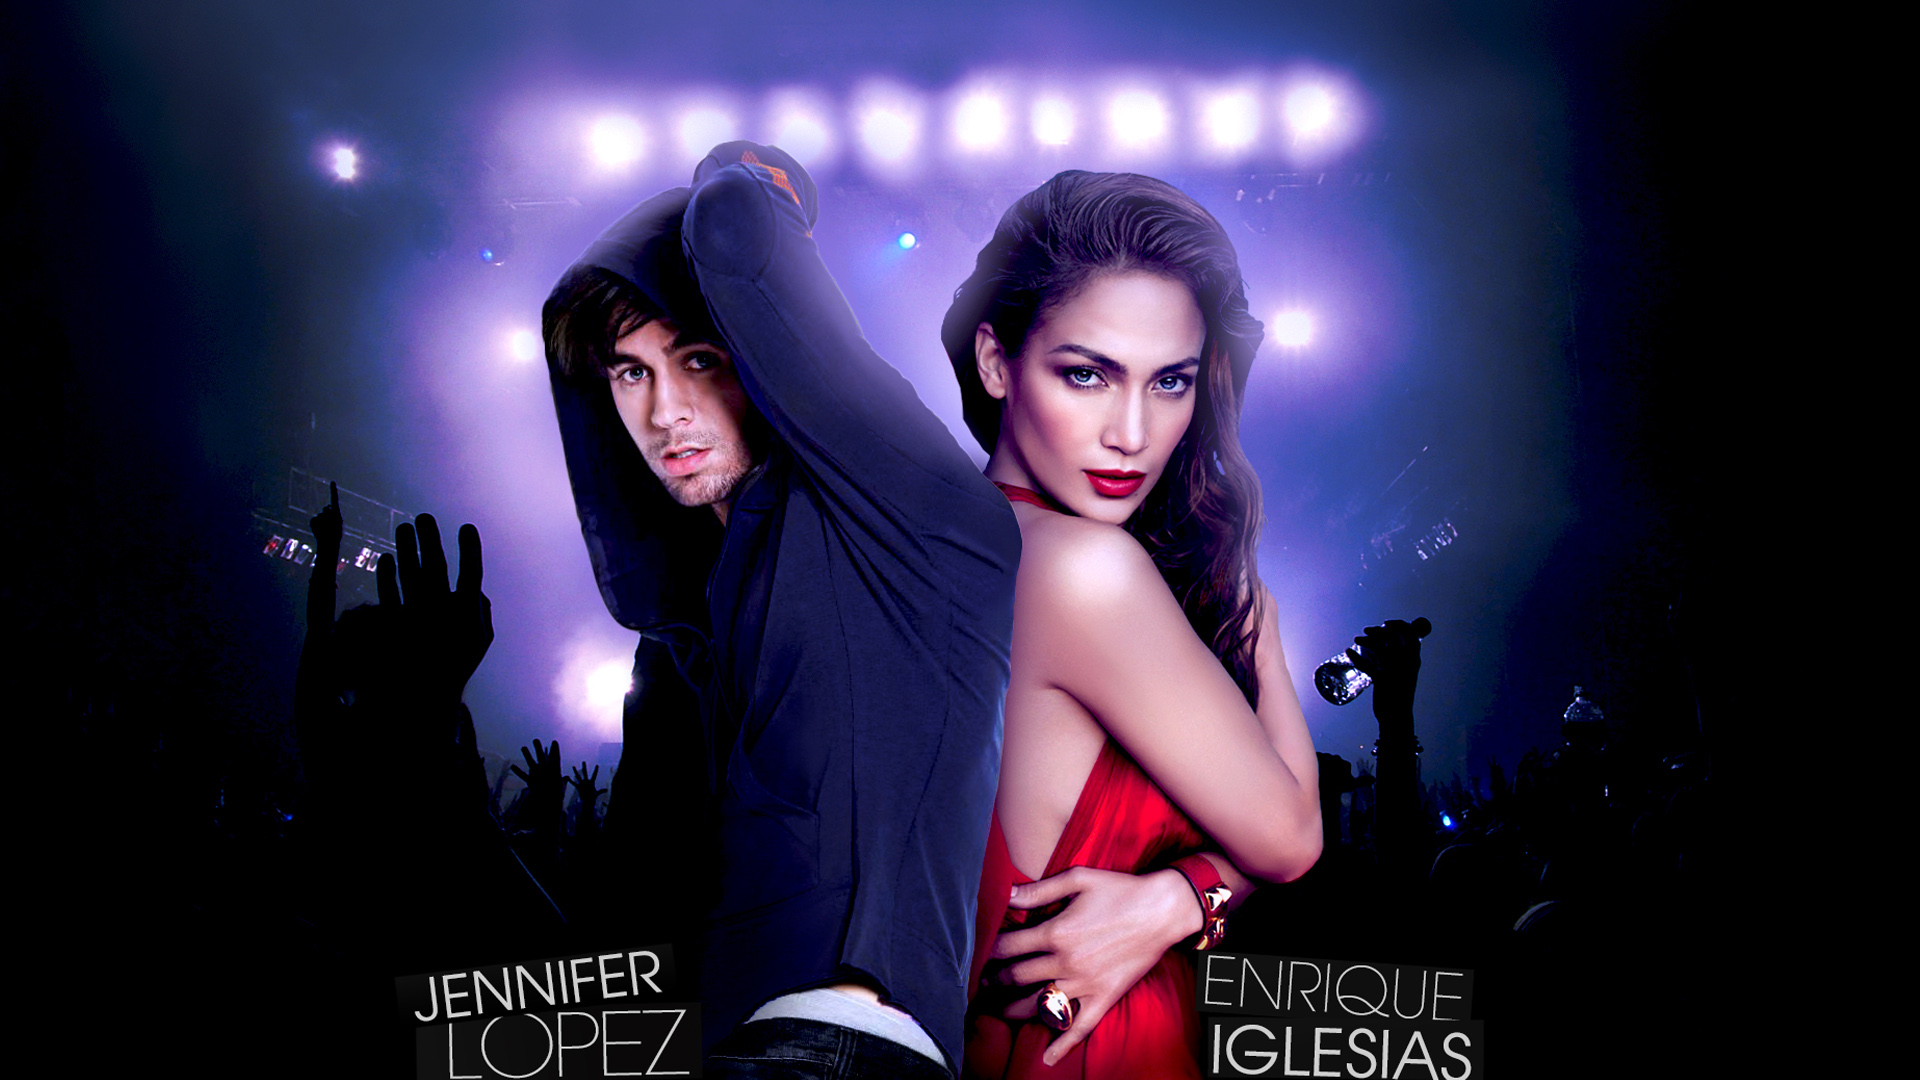 Jennifer Lopez Enrique Iglesias Tour 1073.25 Kb